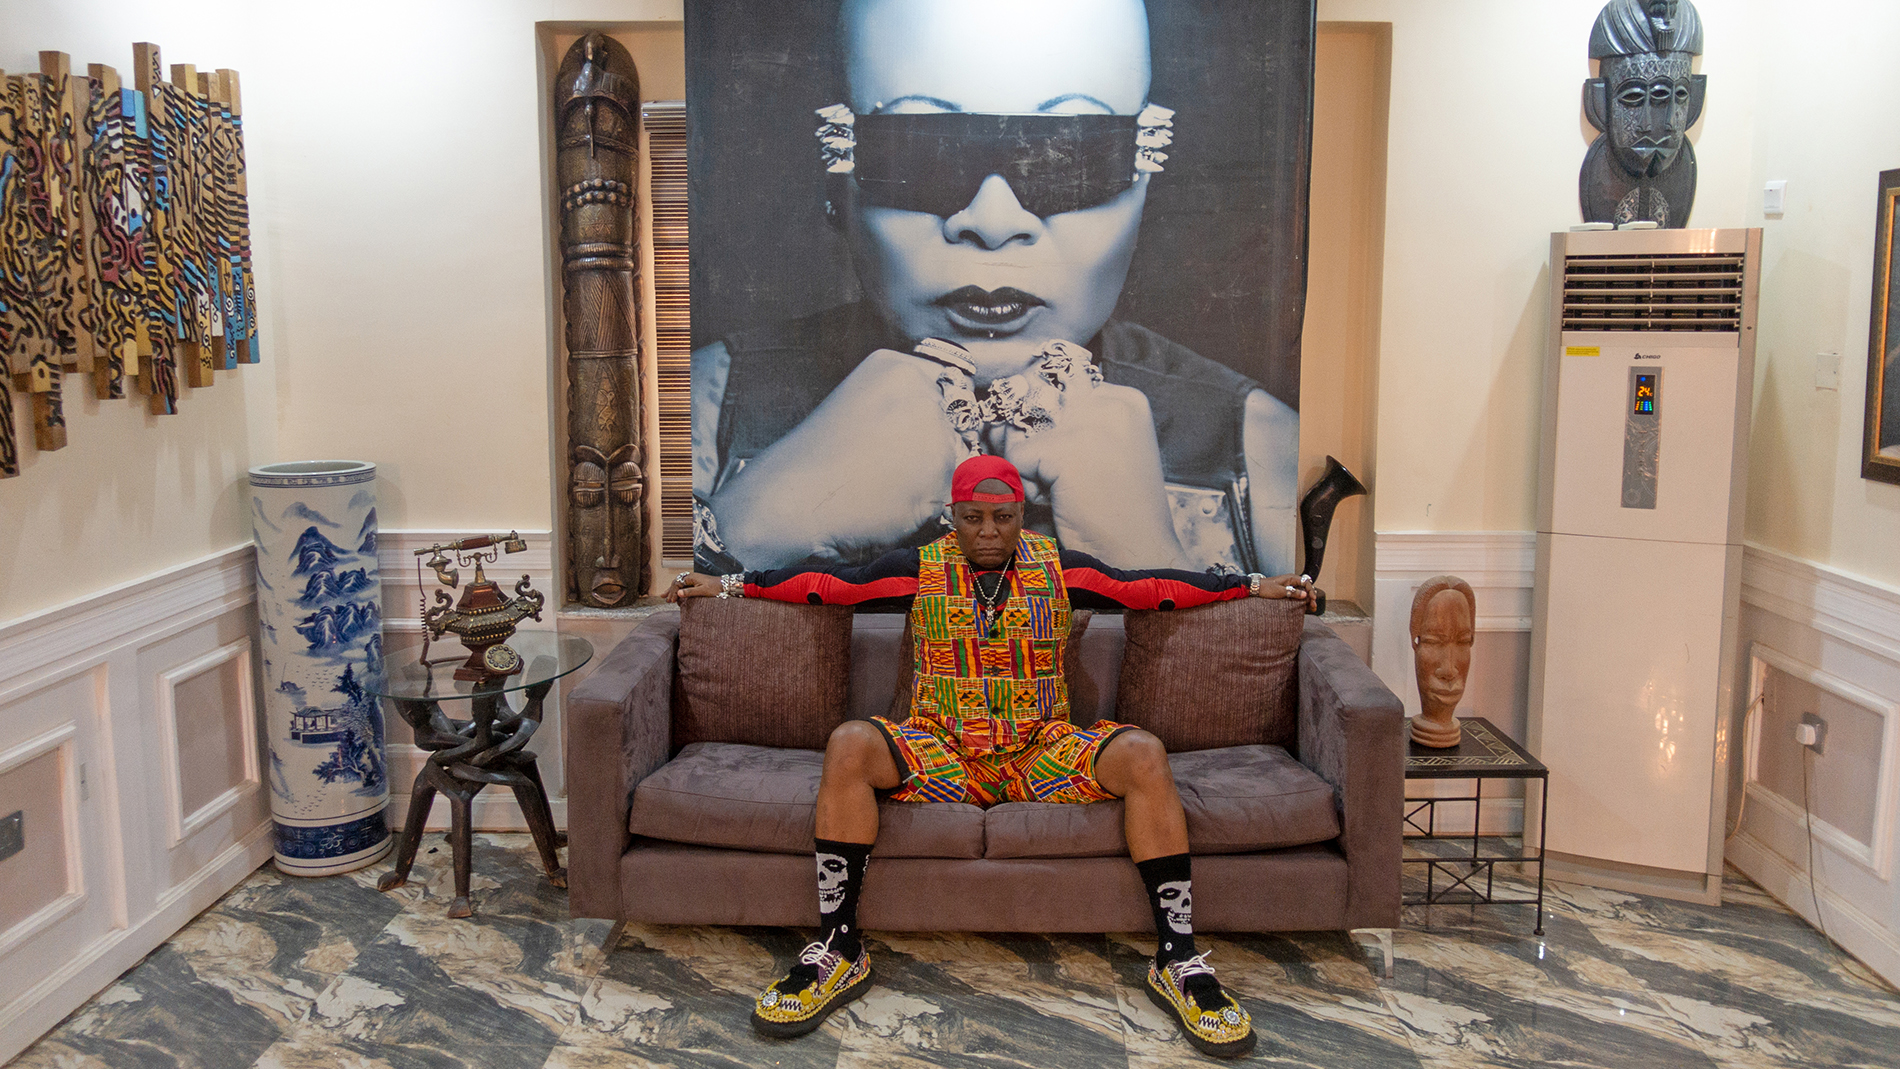 Provocateur and pop star Charly Boy (née Charles Oputa) at his home in Abuja, Nigeria, shot by Jan Hoek and Stephen Tayo.